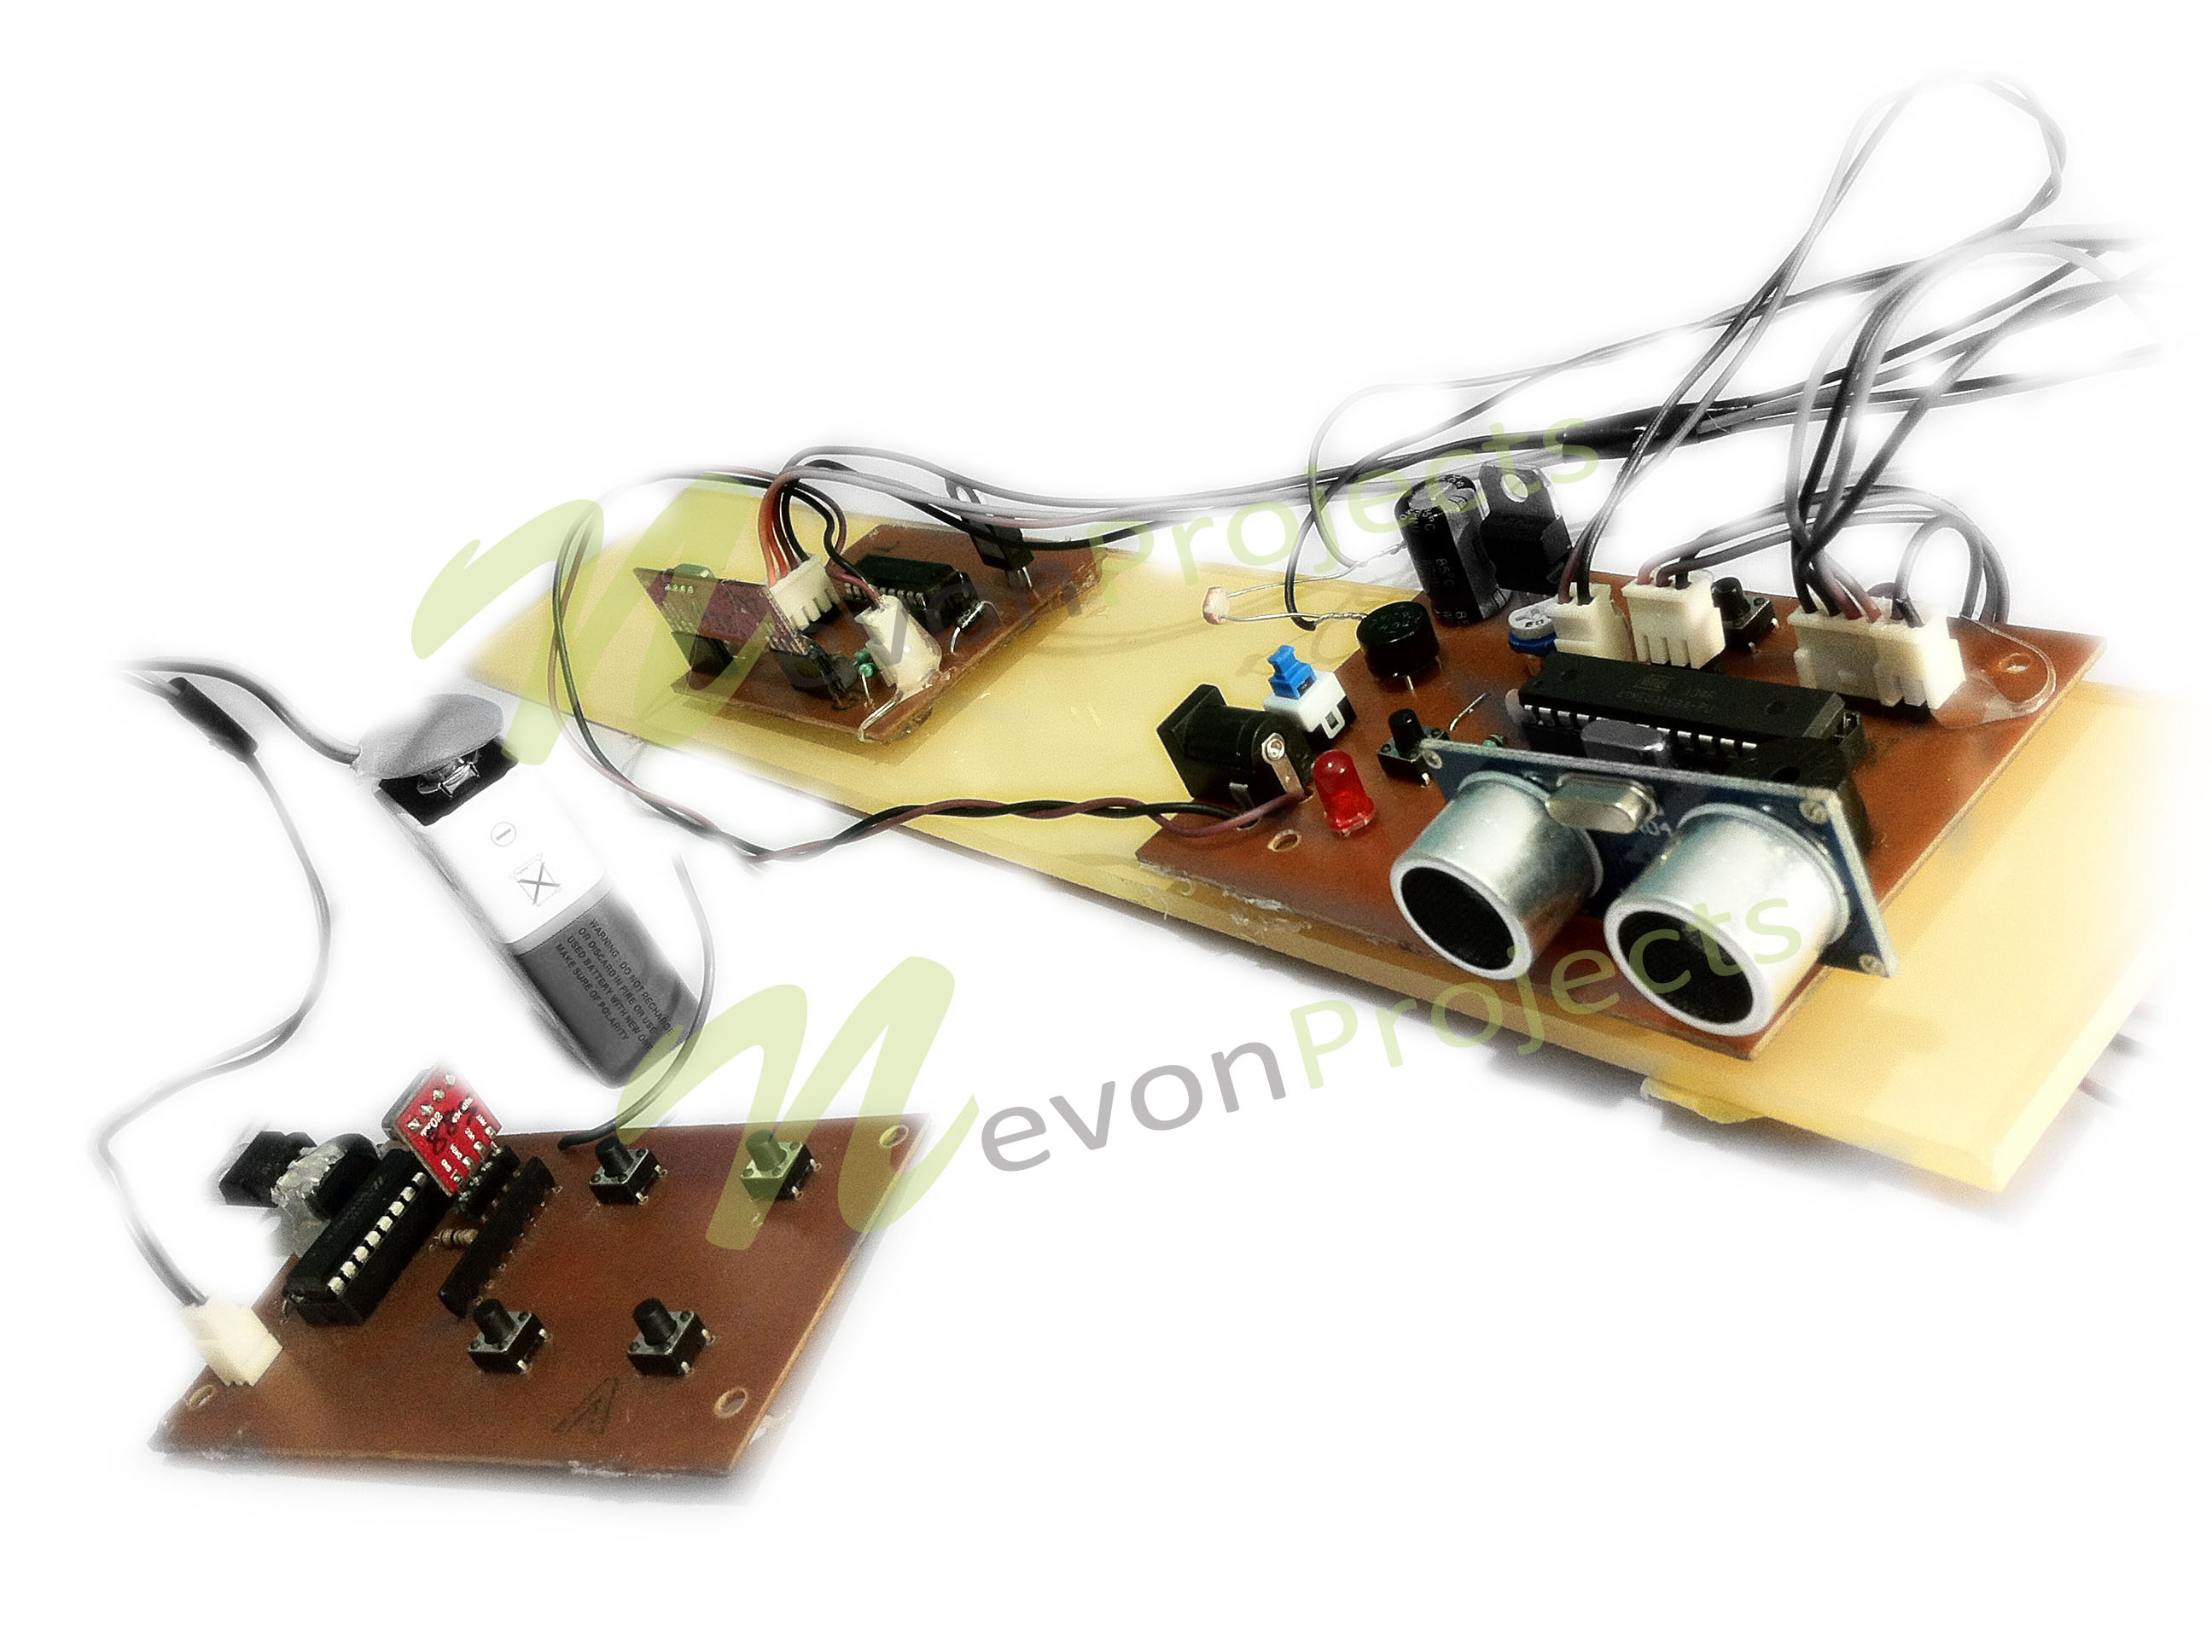 Ultrasonic Navigation Project For Blind People Nevonprojects Electronics Mini Projects Circuit This Kit Is Available